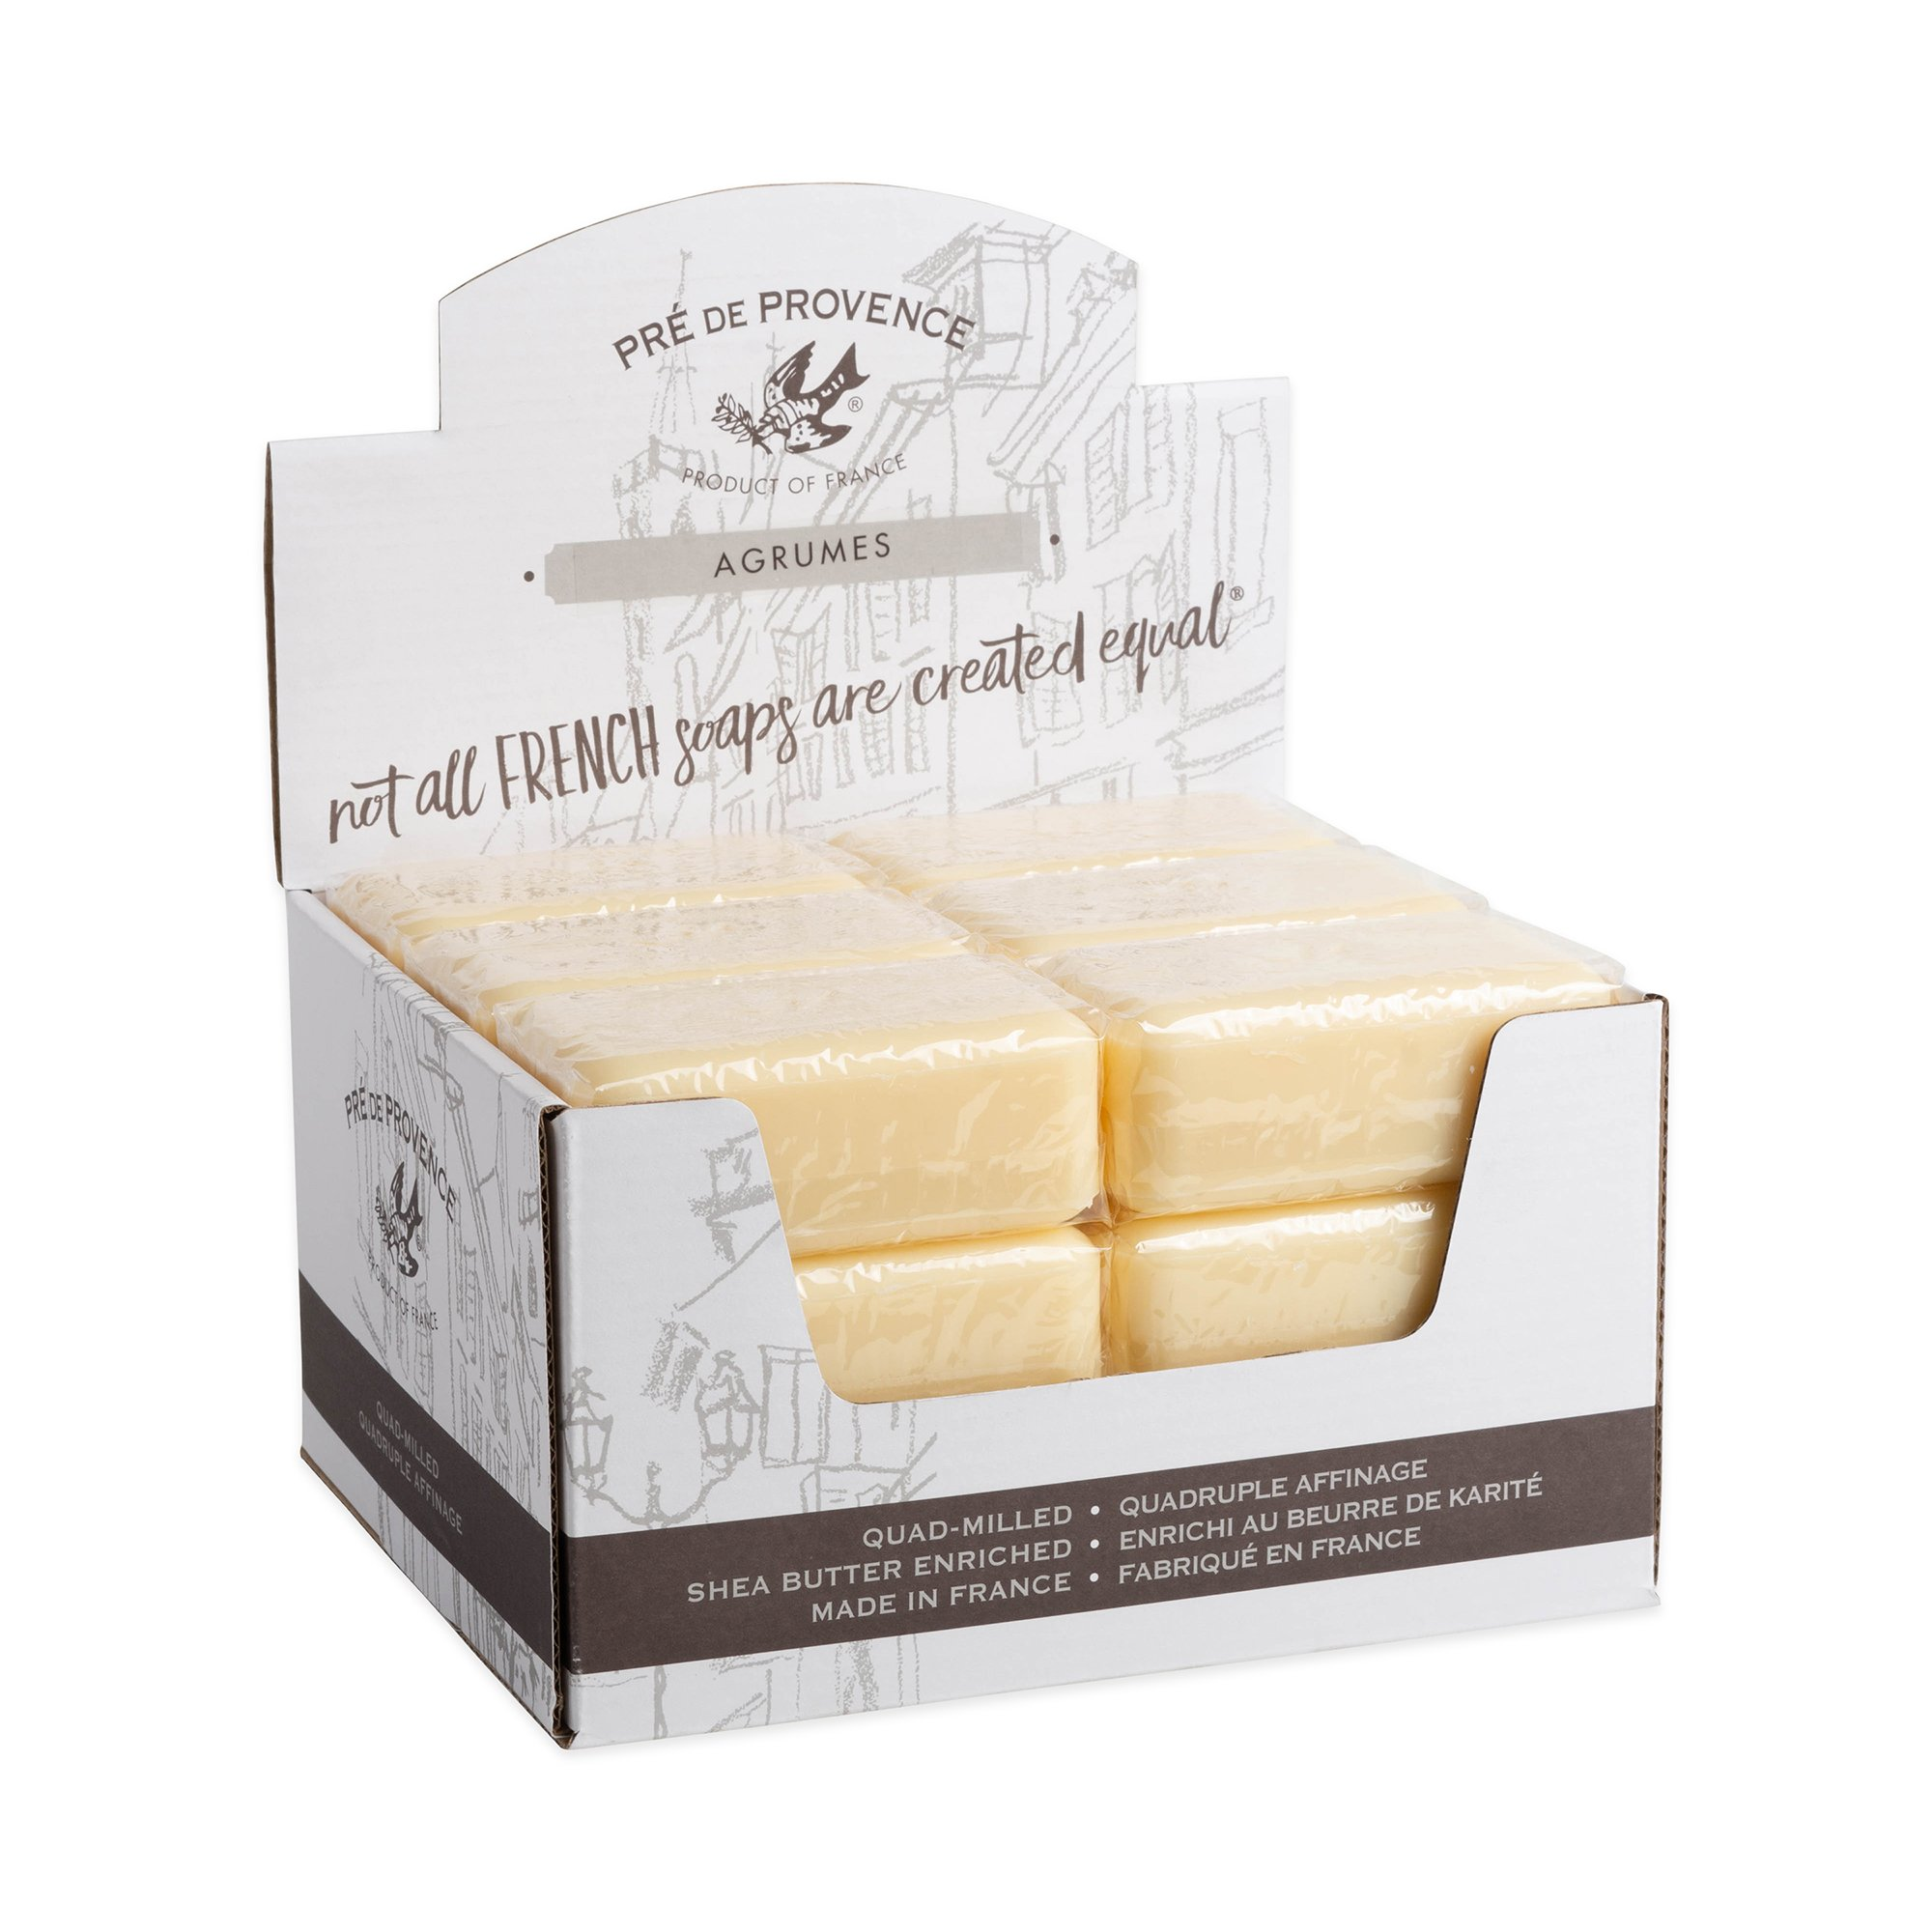 Pre de Provence Artisanal French Soap Bar Enriched with Shea Butter, Agrumes, 150 Gram (Pack of 18)